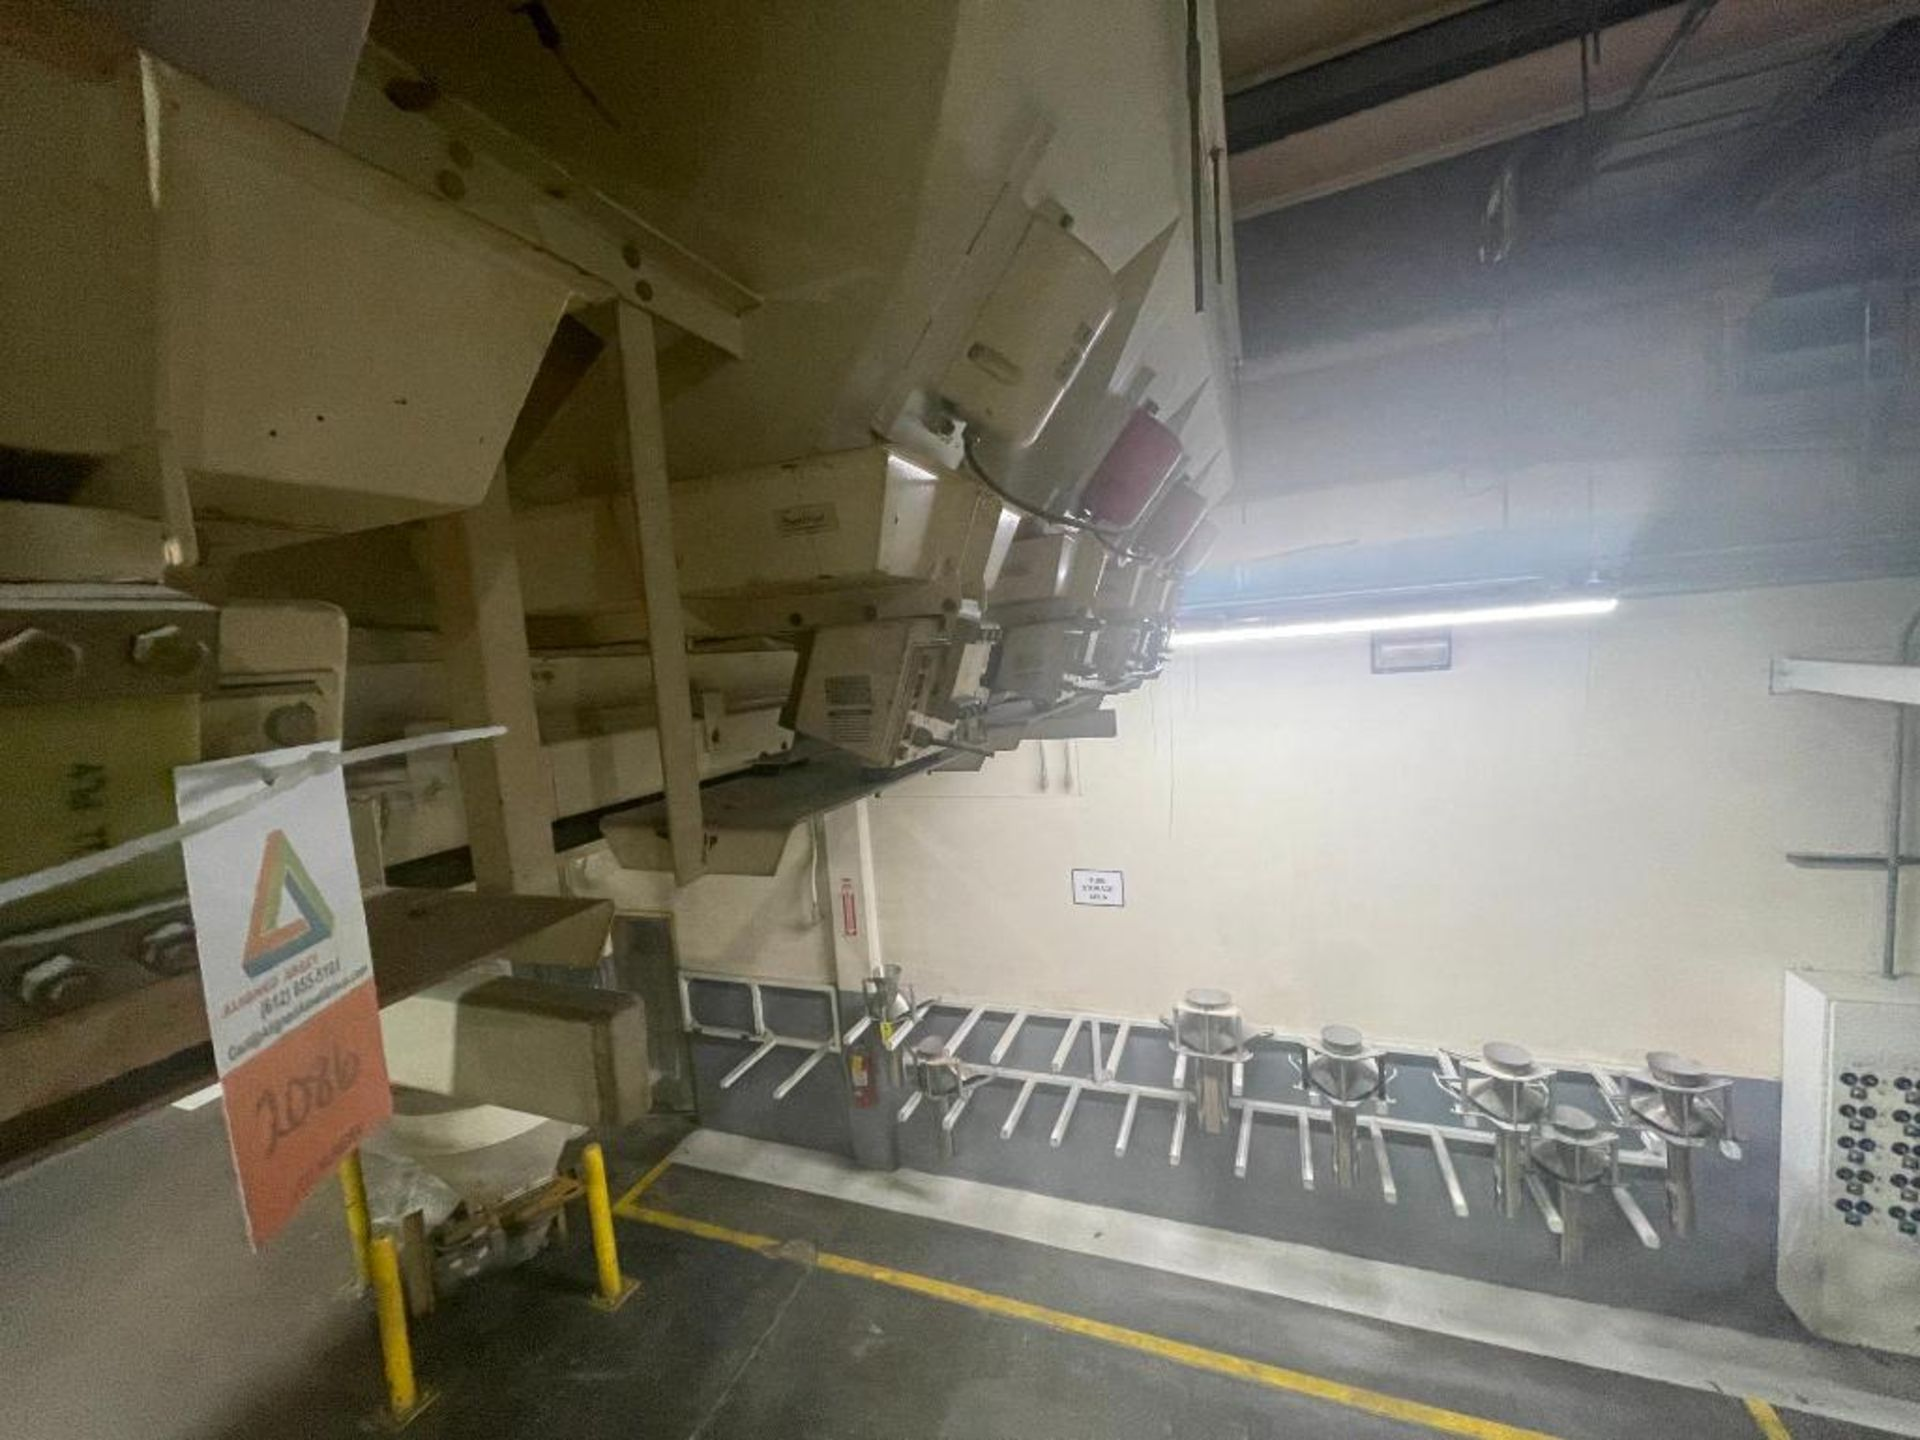 Aseeco 5-bin blending system with 5 Syntron vibratory feeders on bottom - Image 11 of 12